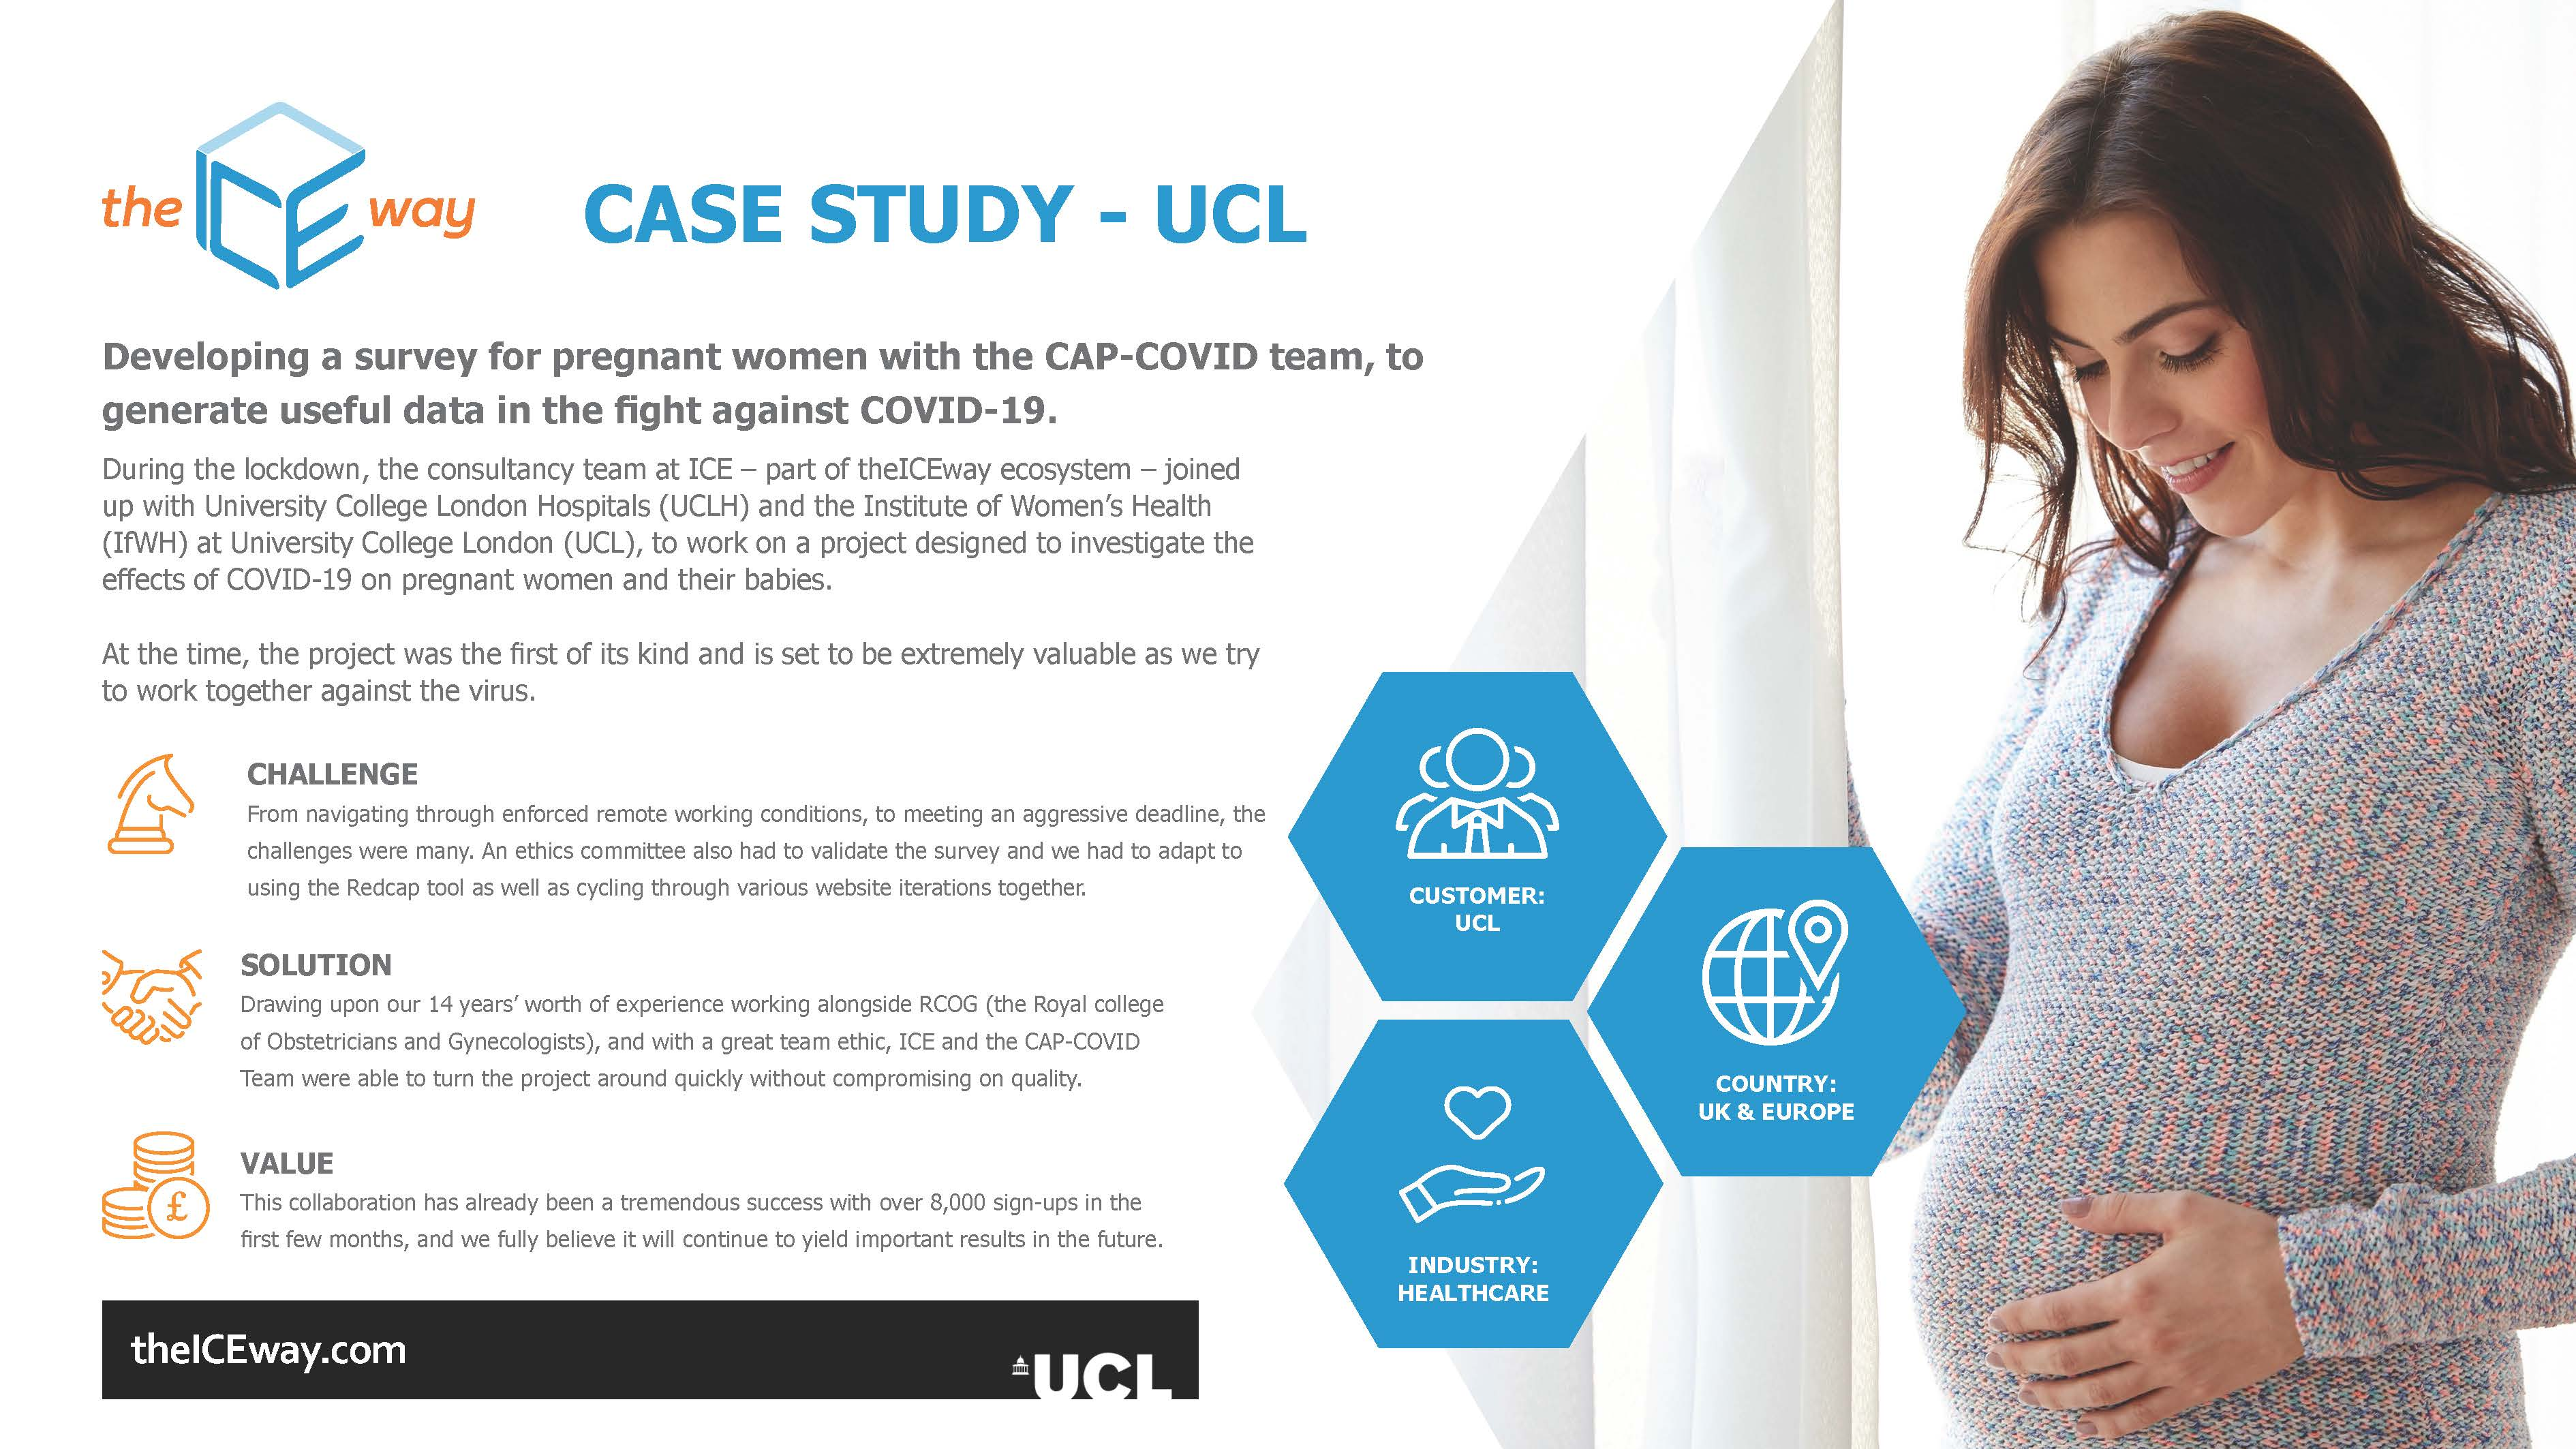 UCL Case Study: theICEway 2020